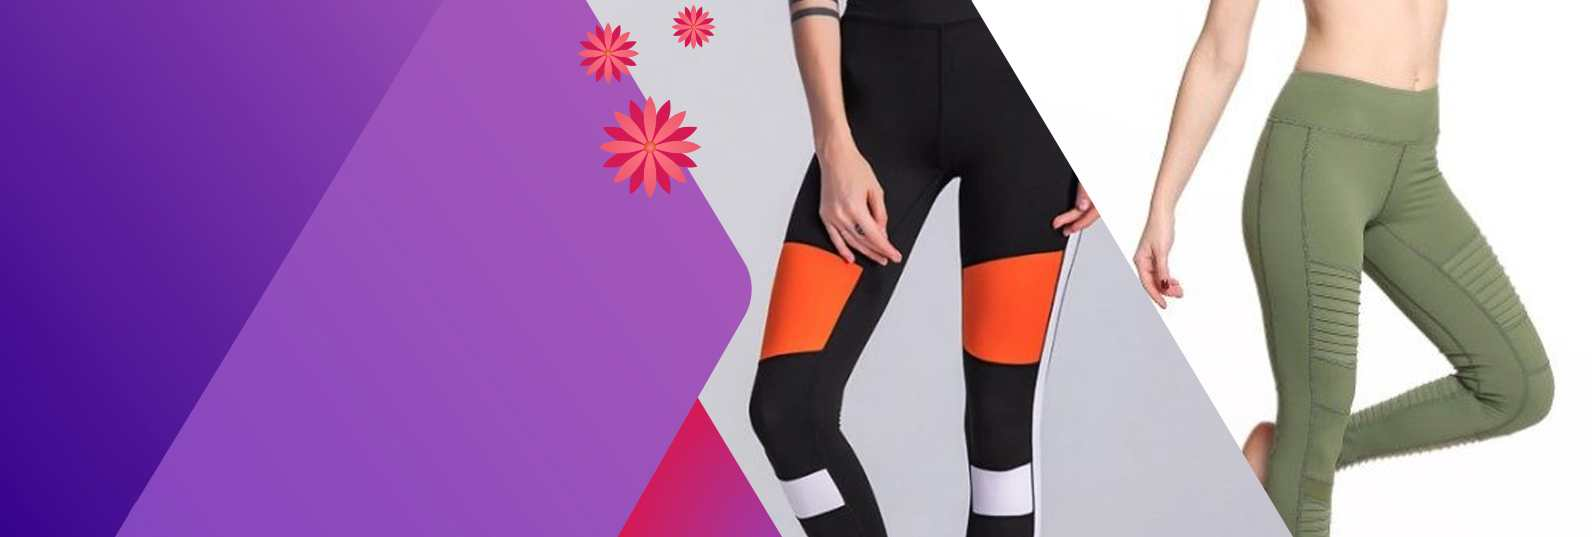 Wholesale Tights Manufacturers Seamless Leggings Wholesale Seamless Workout Leggings And